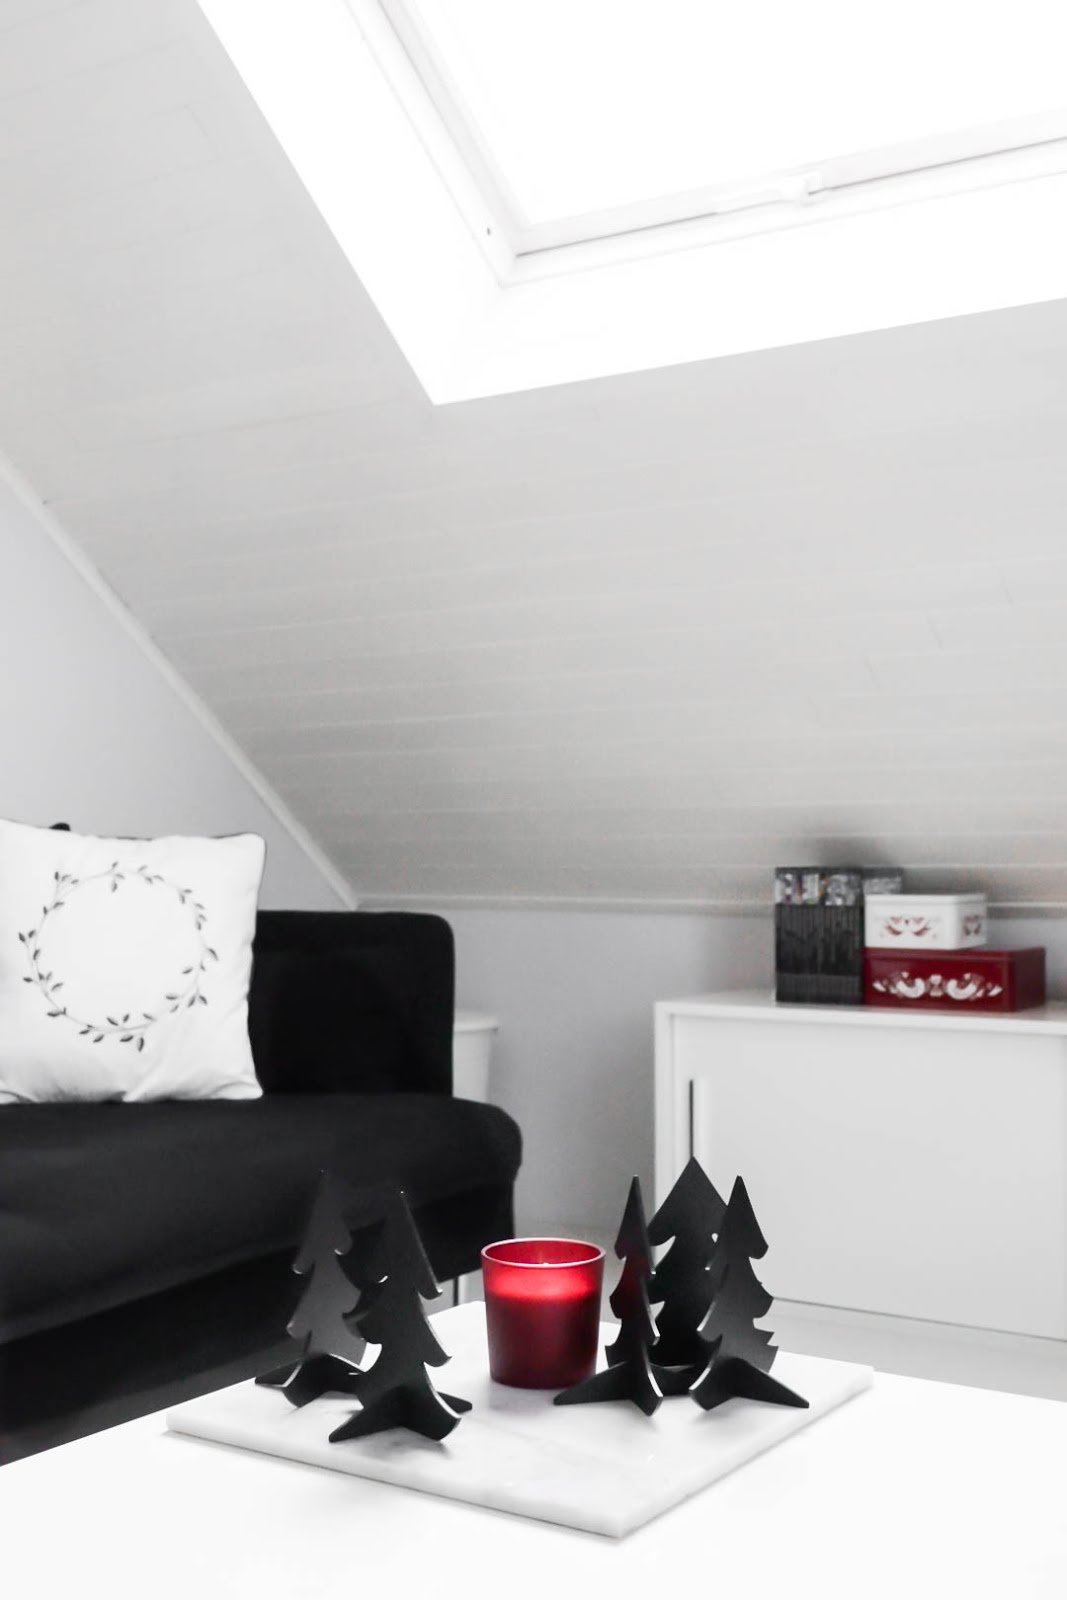 Minimal christmas decorations, black white red, ikea, kerstmis, decoratie, interieur